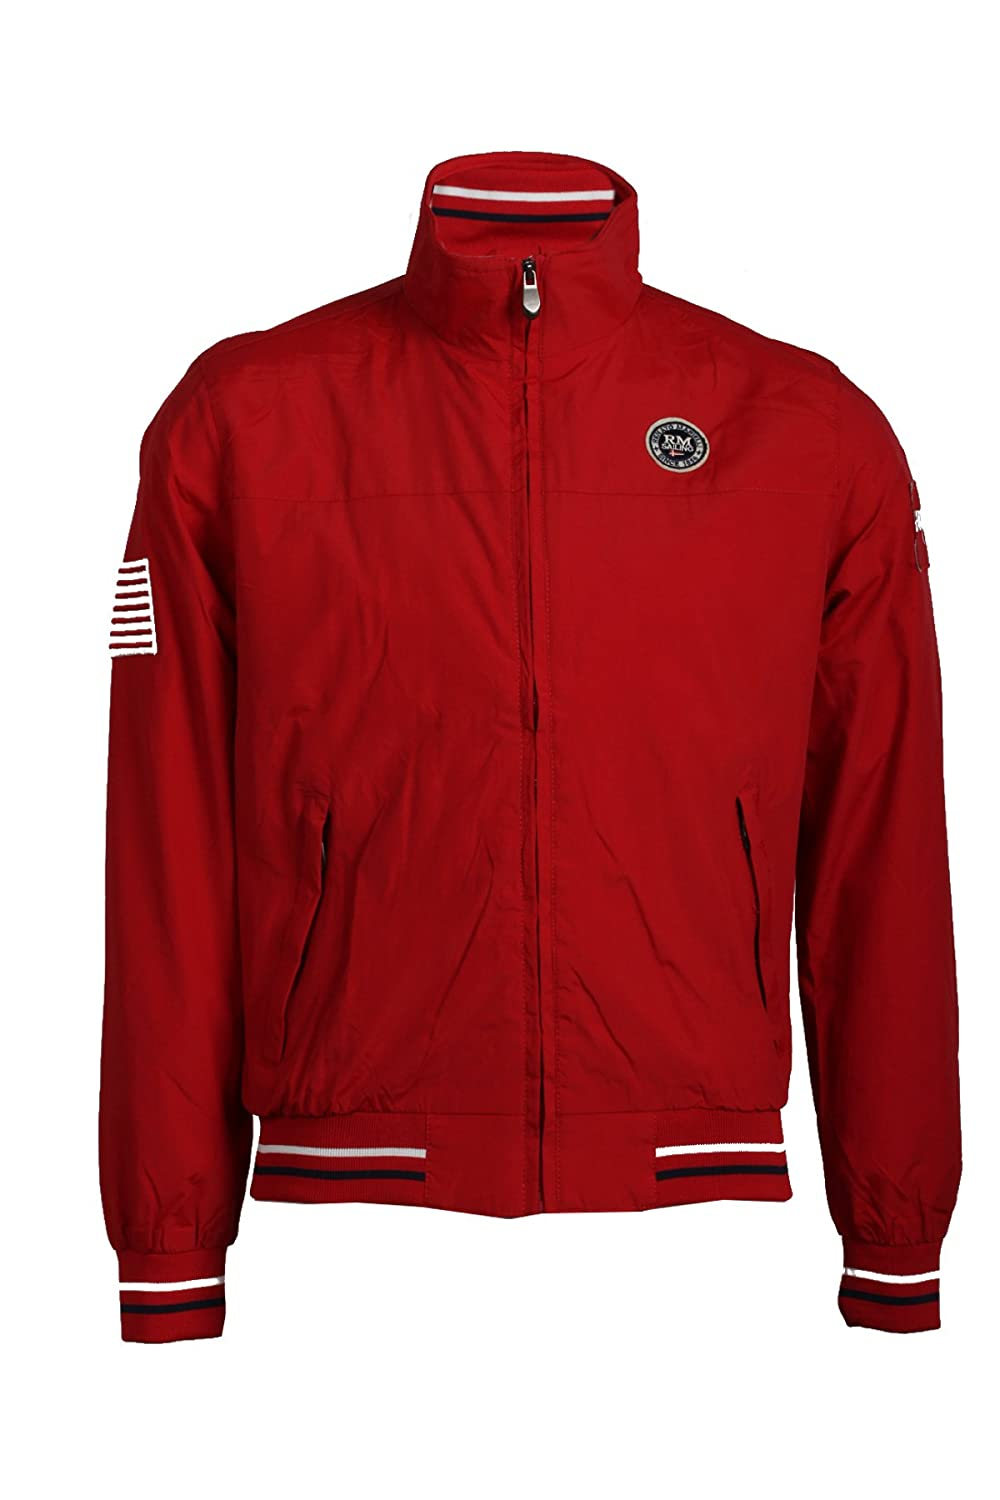 Alex Sailing jacket -red